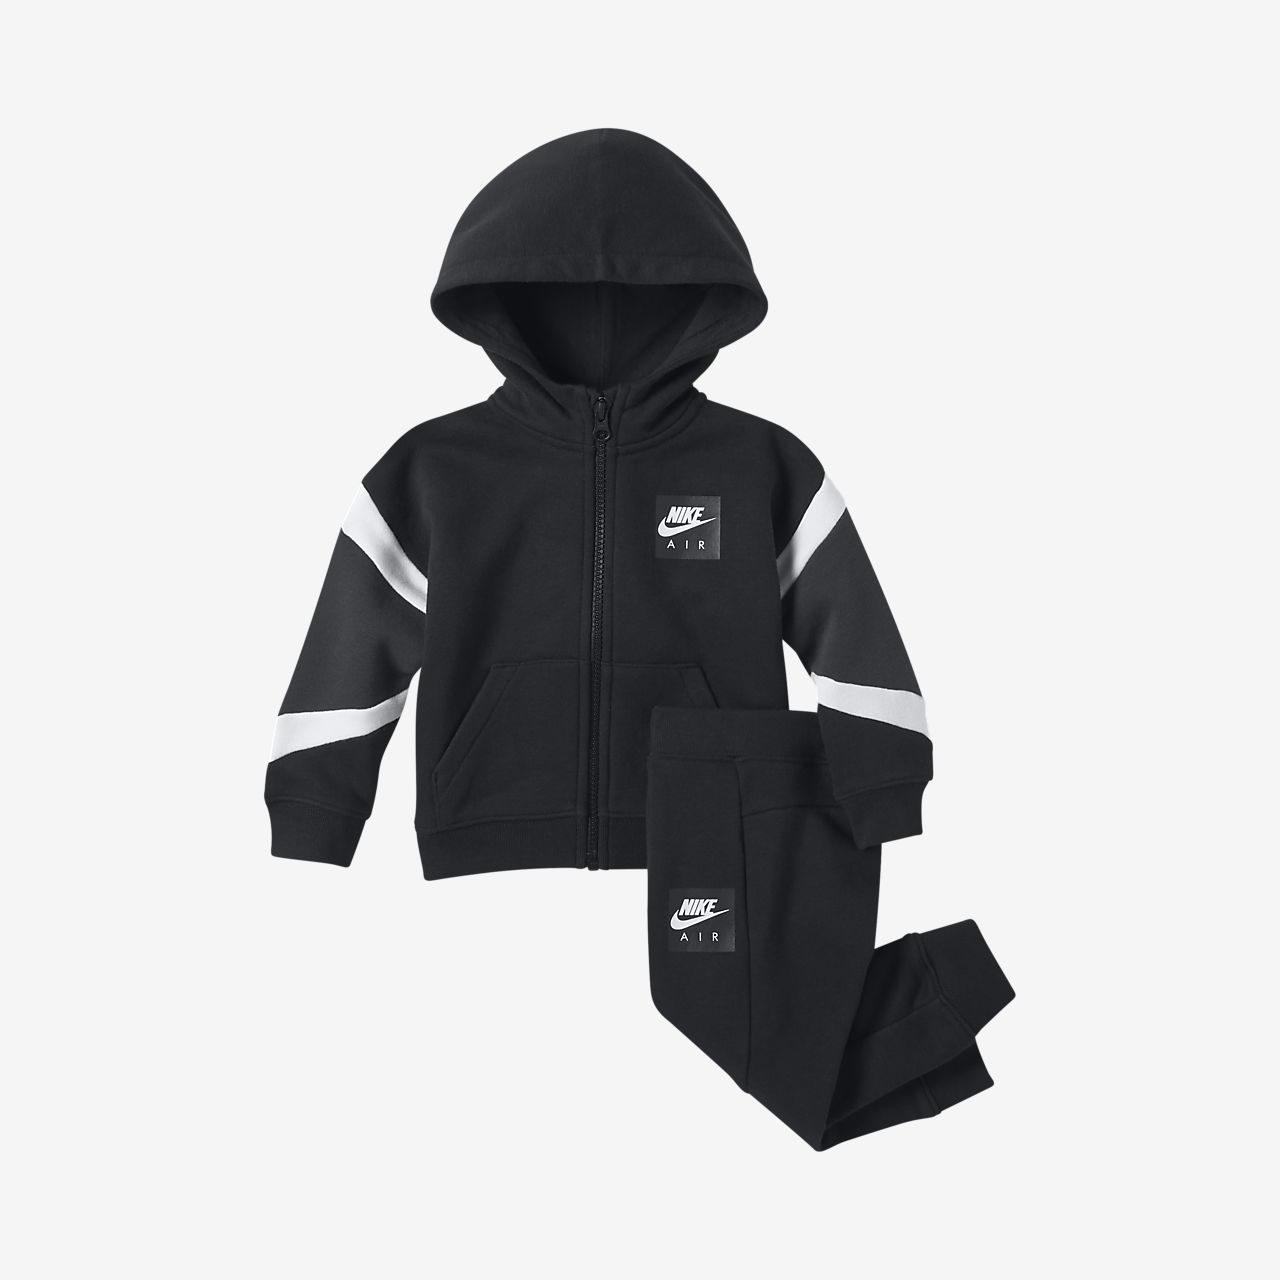 Nike Air Baby and Toddler Tracksuit